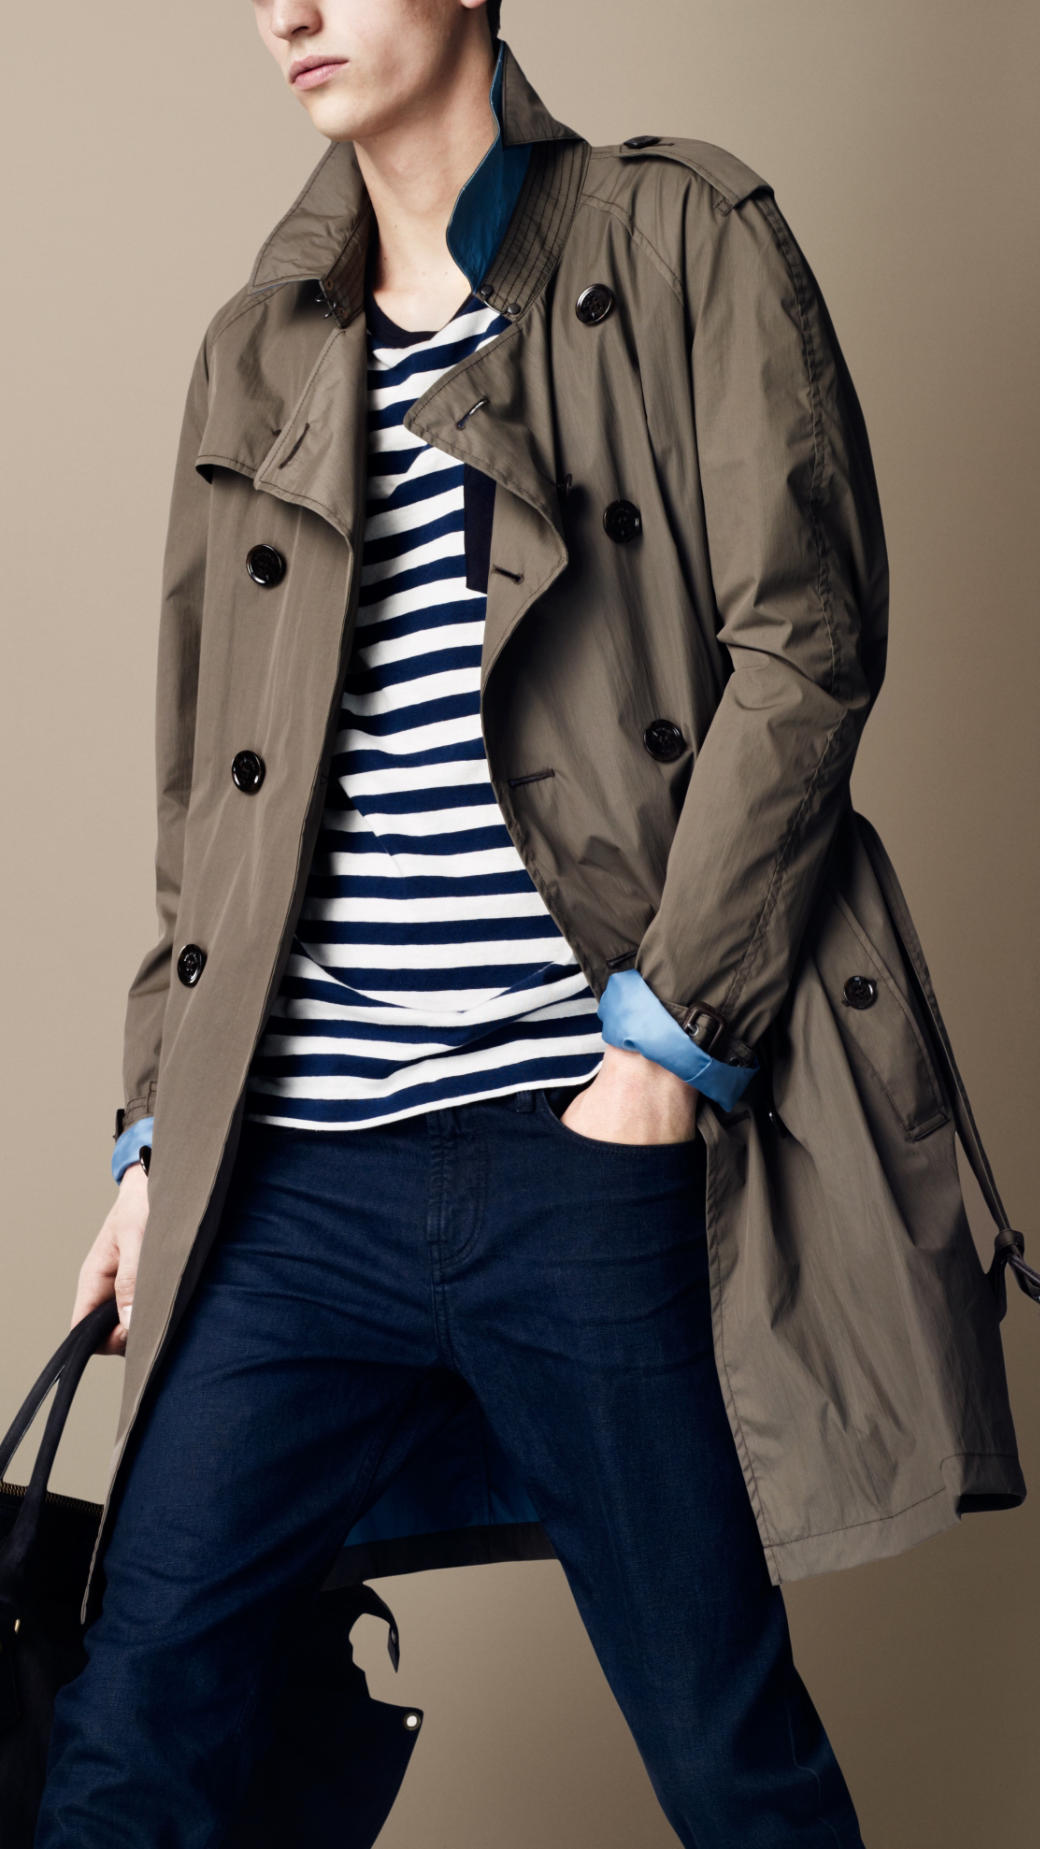 burberry lined trench coat tradingbasis